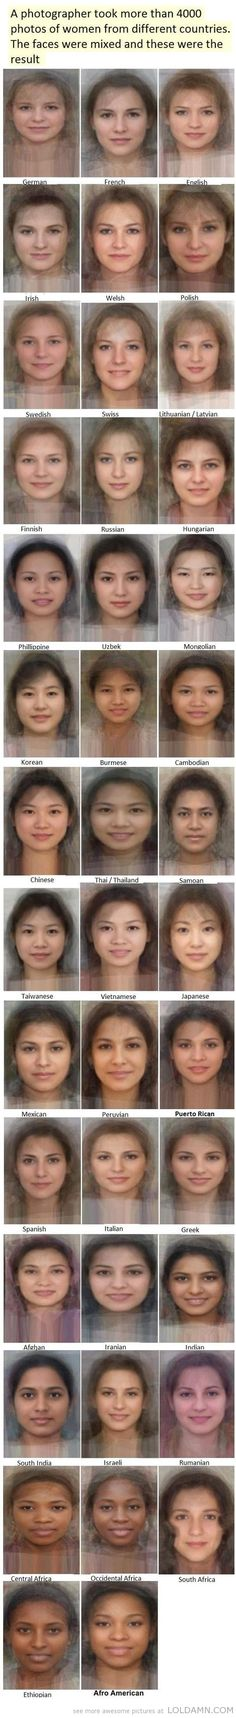 face from women from different countries Average face from women from different countries - Awesome!Average face from women from different countries - Awesome! Average Face, Average Person, Average Girl, Wow Photo, Different Countries, The More You Know, Cool Stuff, Belle Photo, Mind Blown